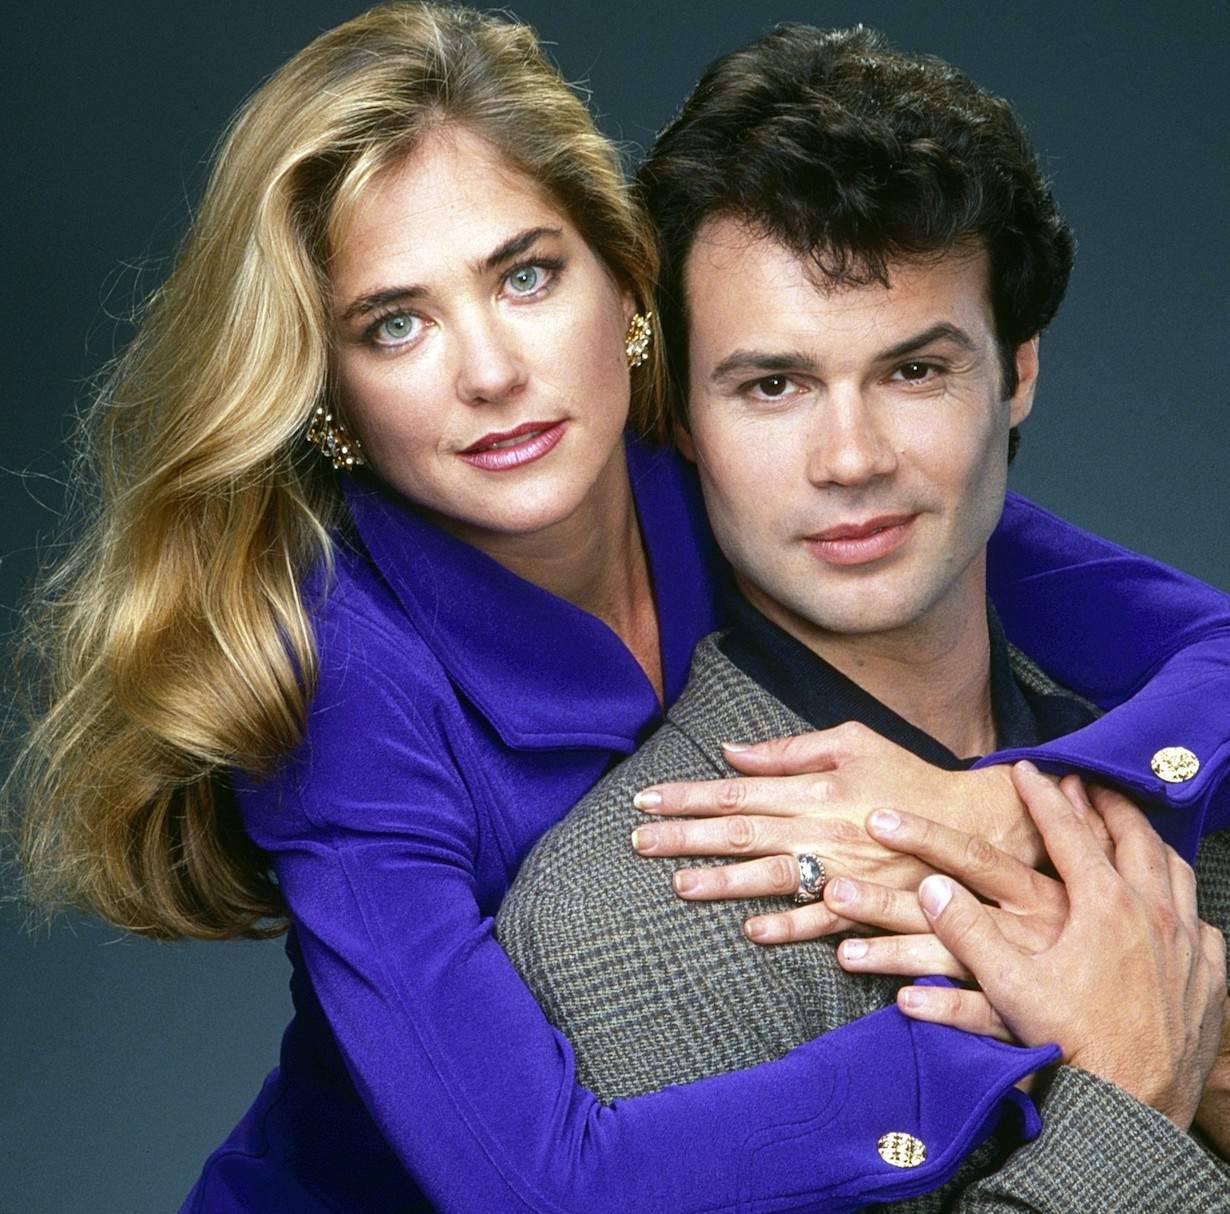 ONE LIFE TO LIVE, from left: John Loprieno, Kassie DePaiva, (1994), 1968-2013. ph: Robert Milazzo/©ABC/courtesy Everett Collection